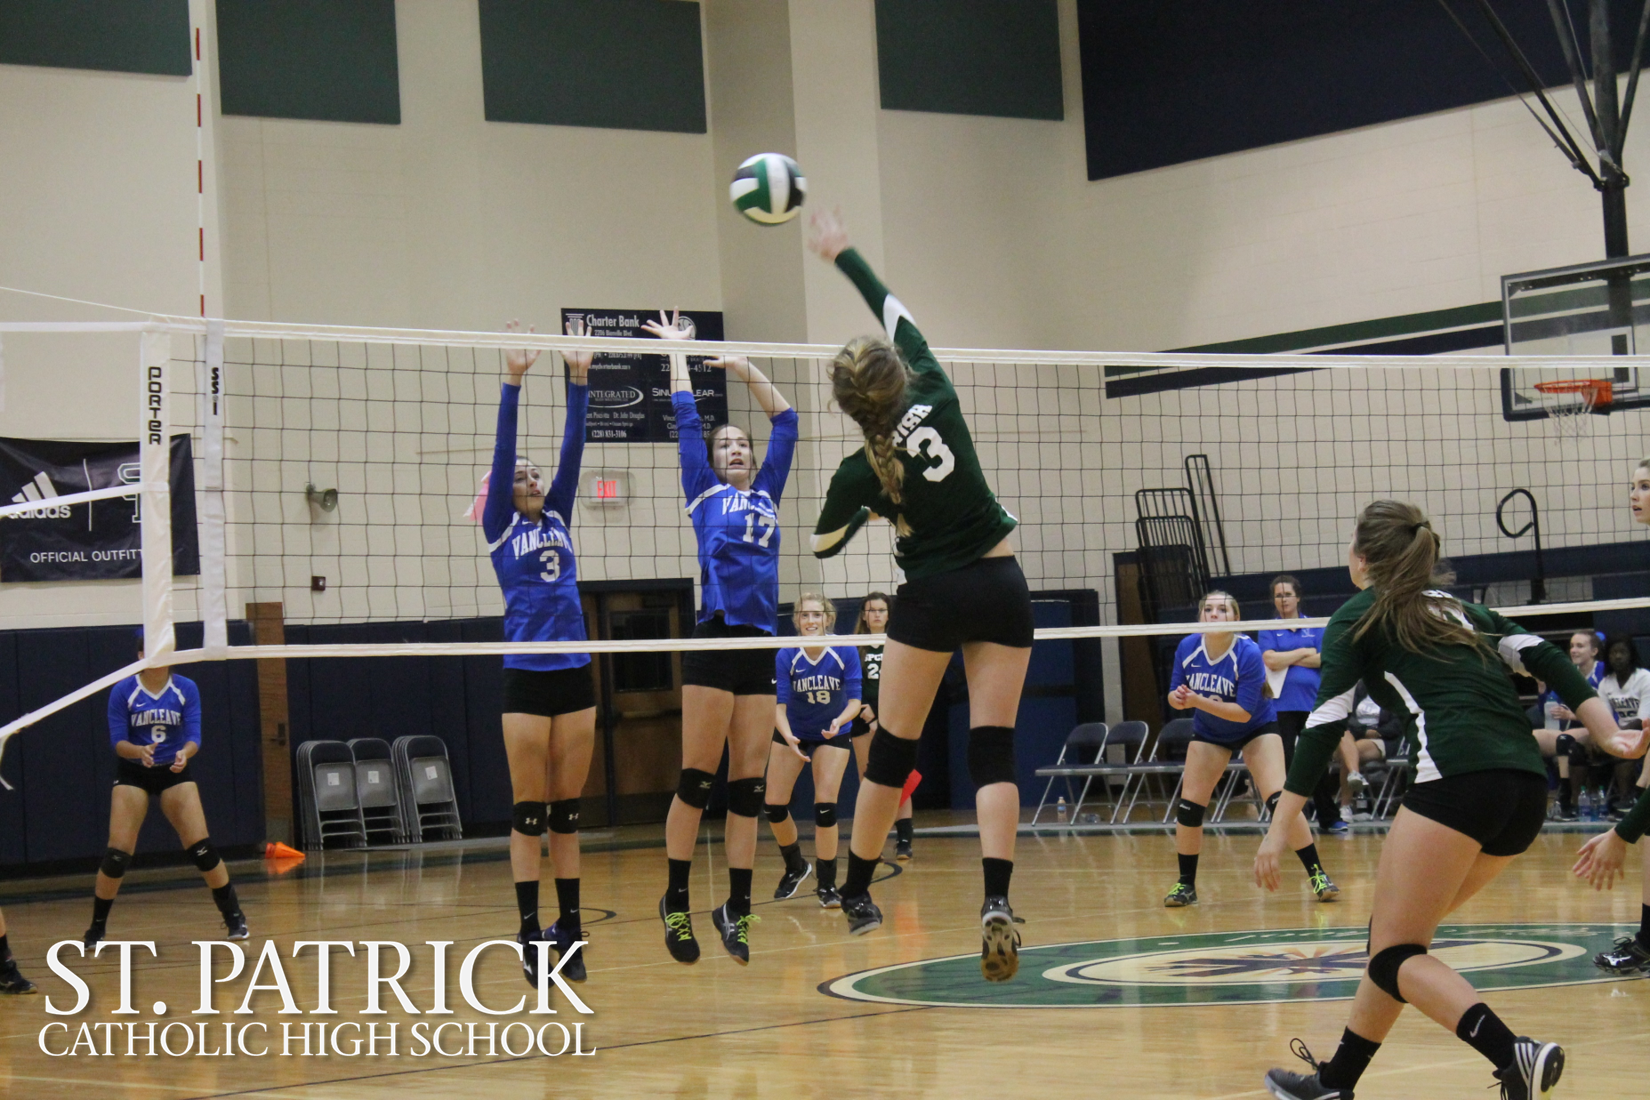 Volleyball vs. Vancleave